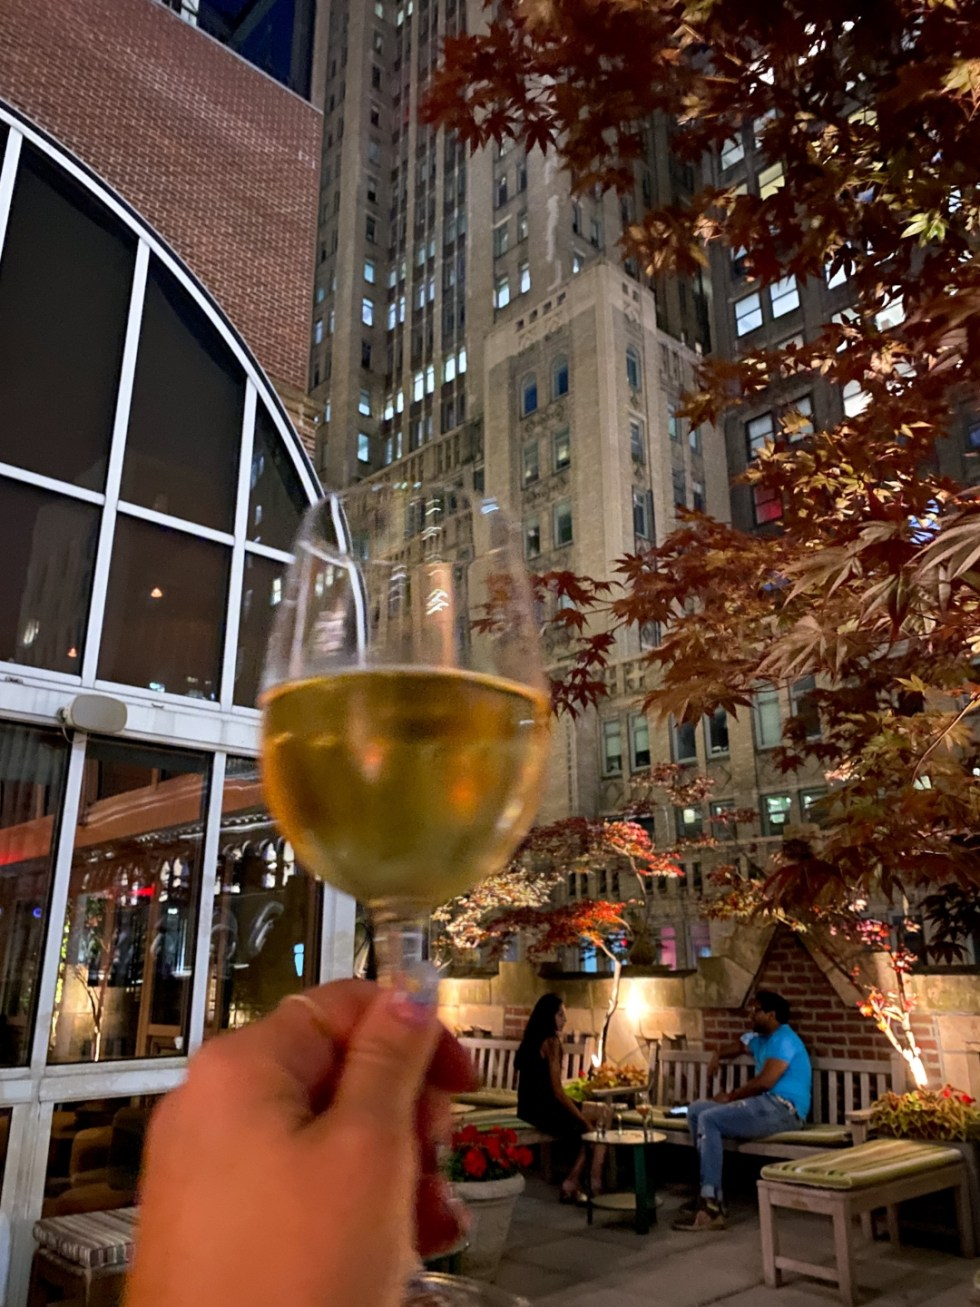 NYC Summer Weekend: Things to Do in NYC in the Summer - I'm Fixin' To - @imfixintoblog   NYC Summer Weekend by popular NC travel blog, I'm Fixin' To: image of a woman holding a glass of white wine.